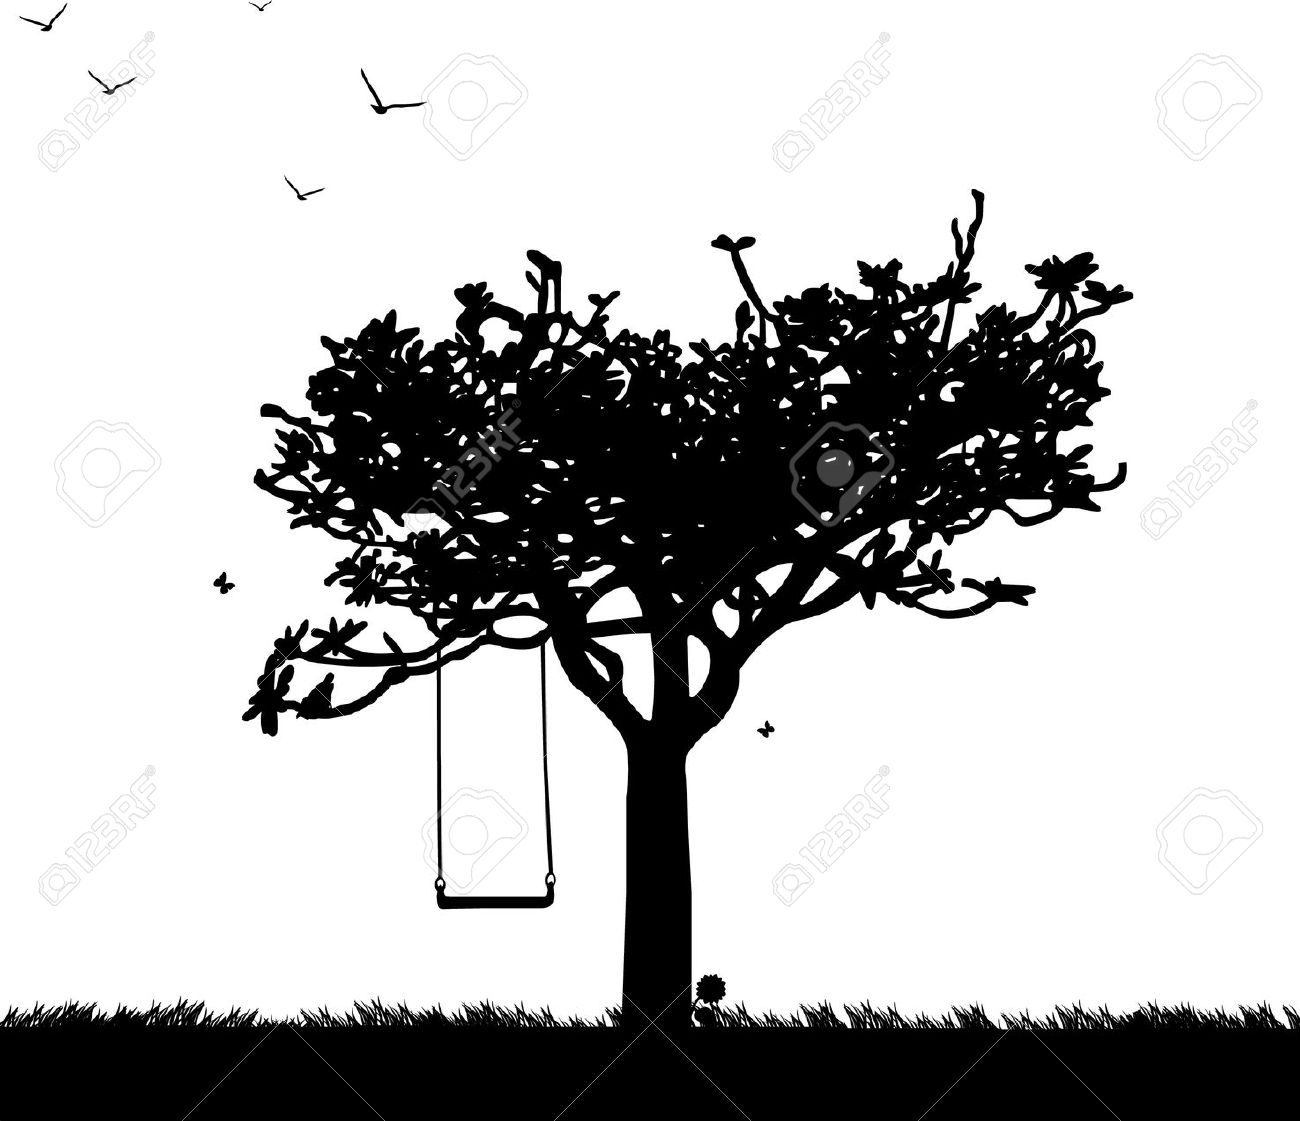 Tree Swing Clipart Black And White.